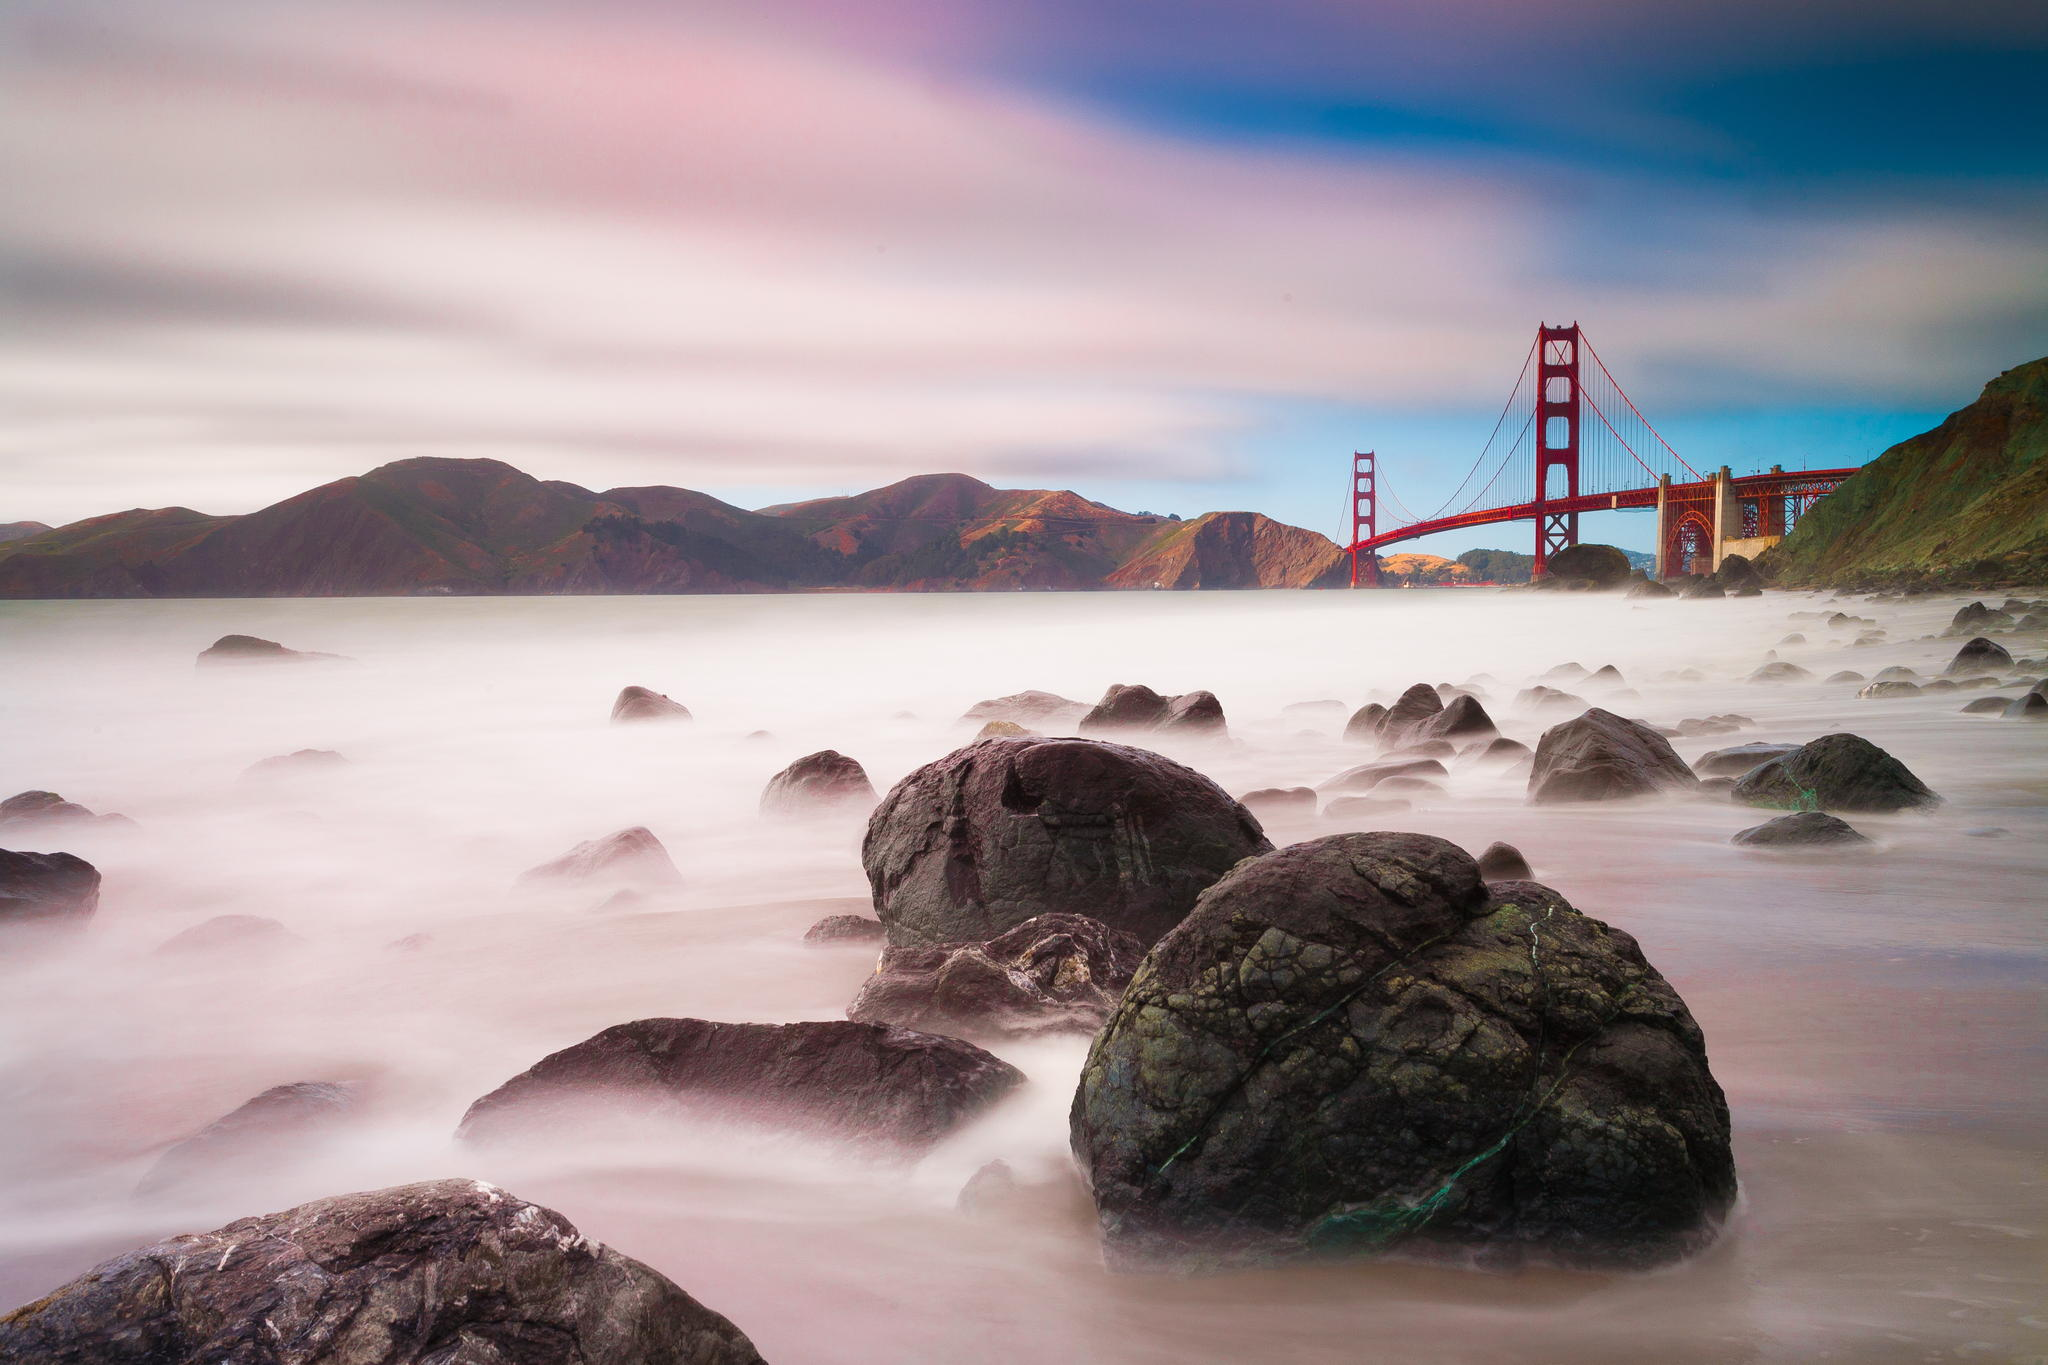 Golden Gate Bridge by Anakin Yang